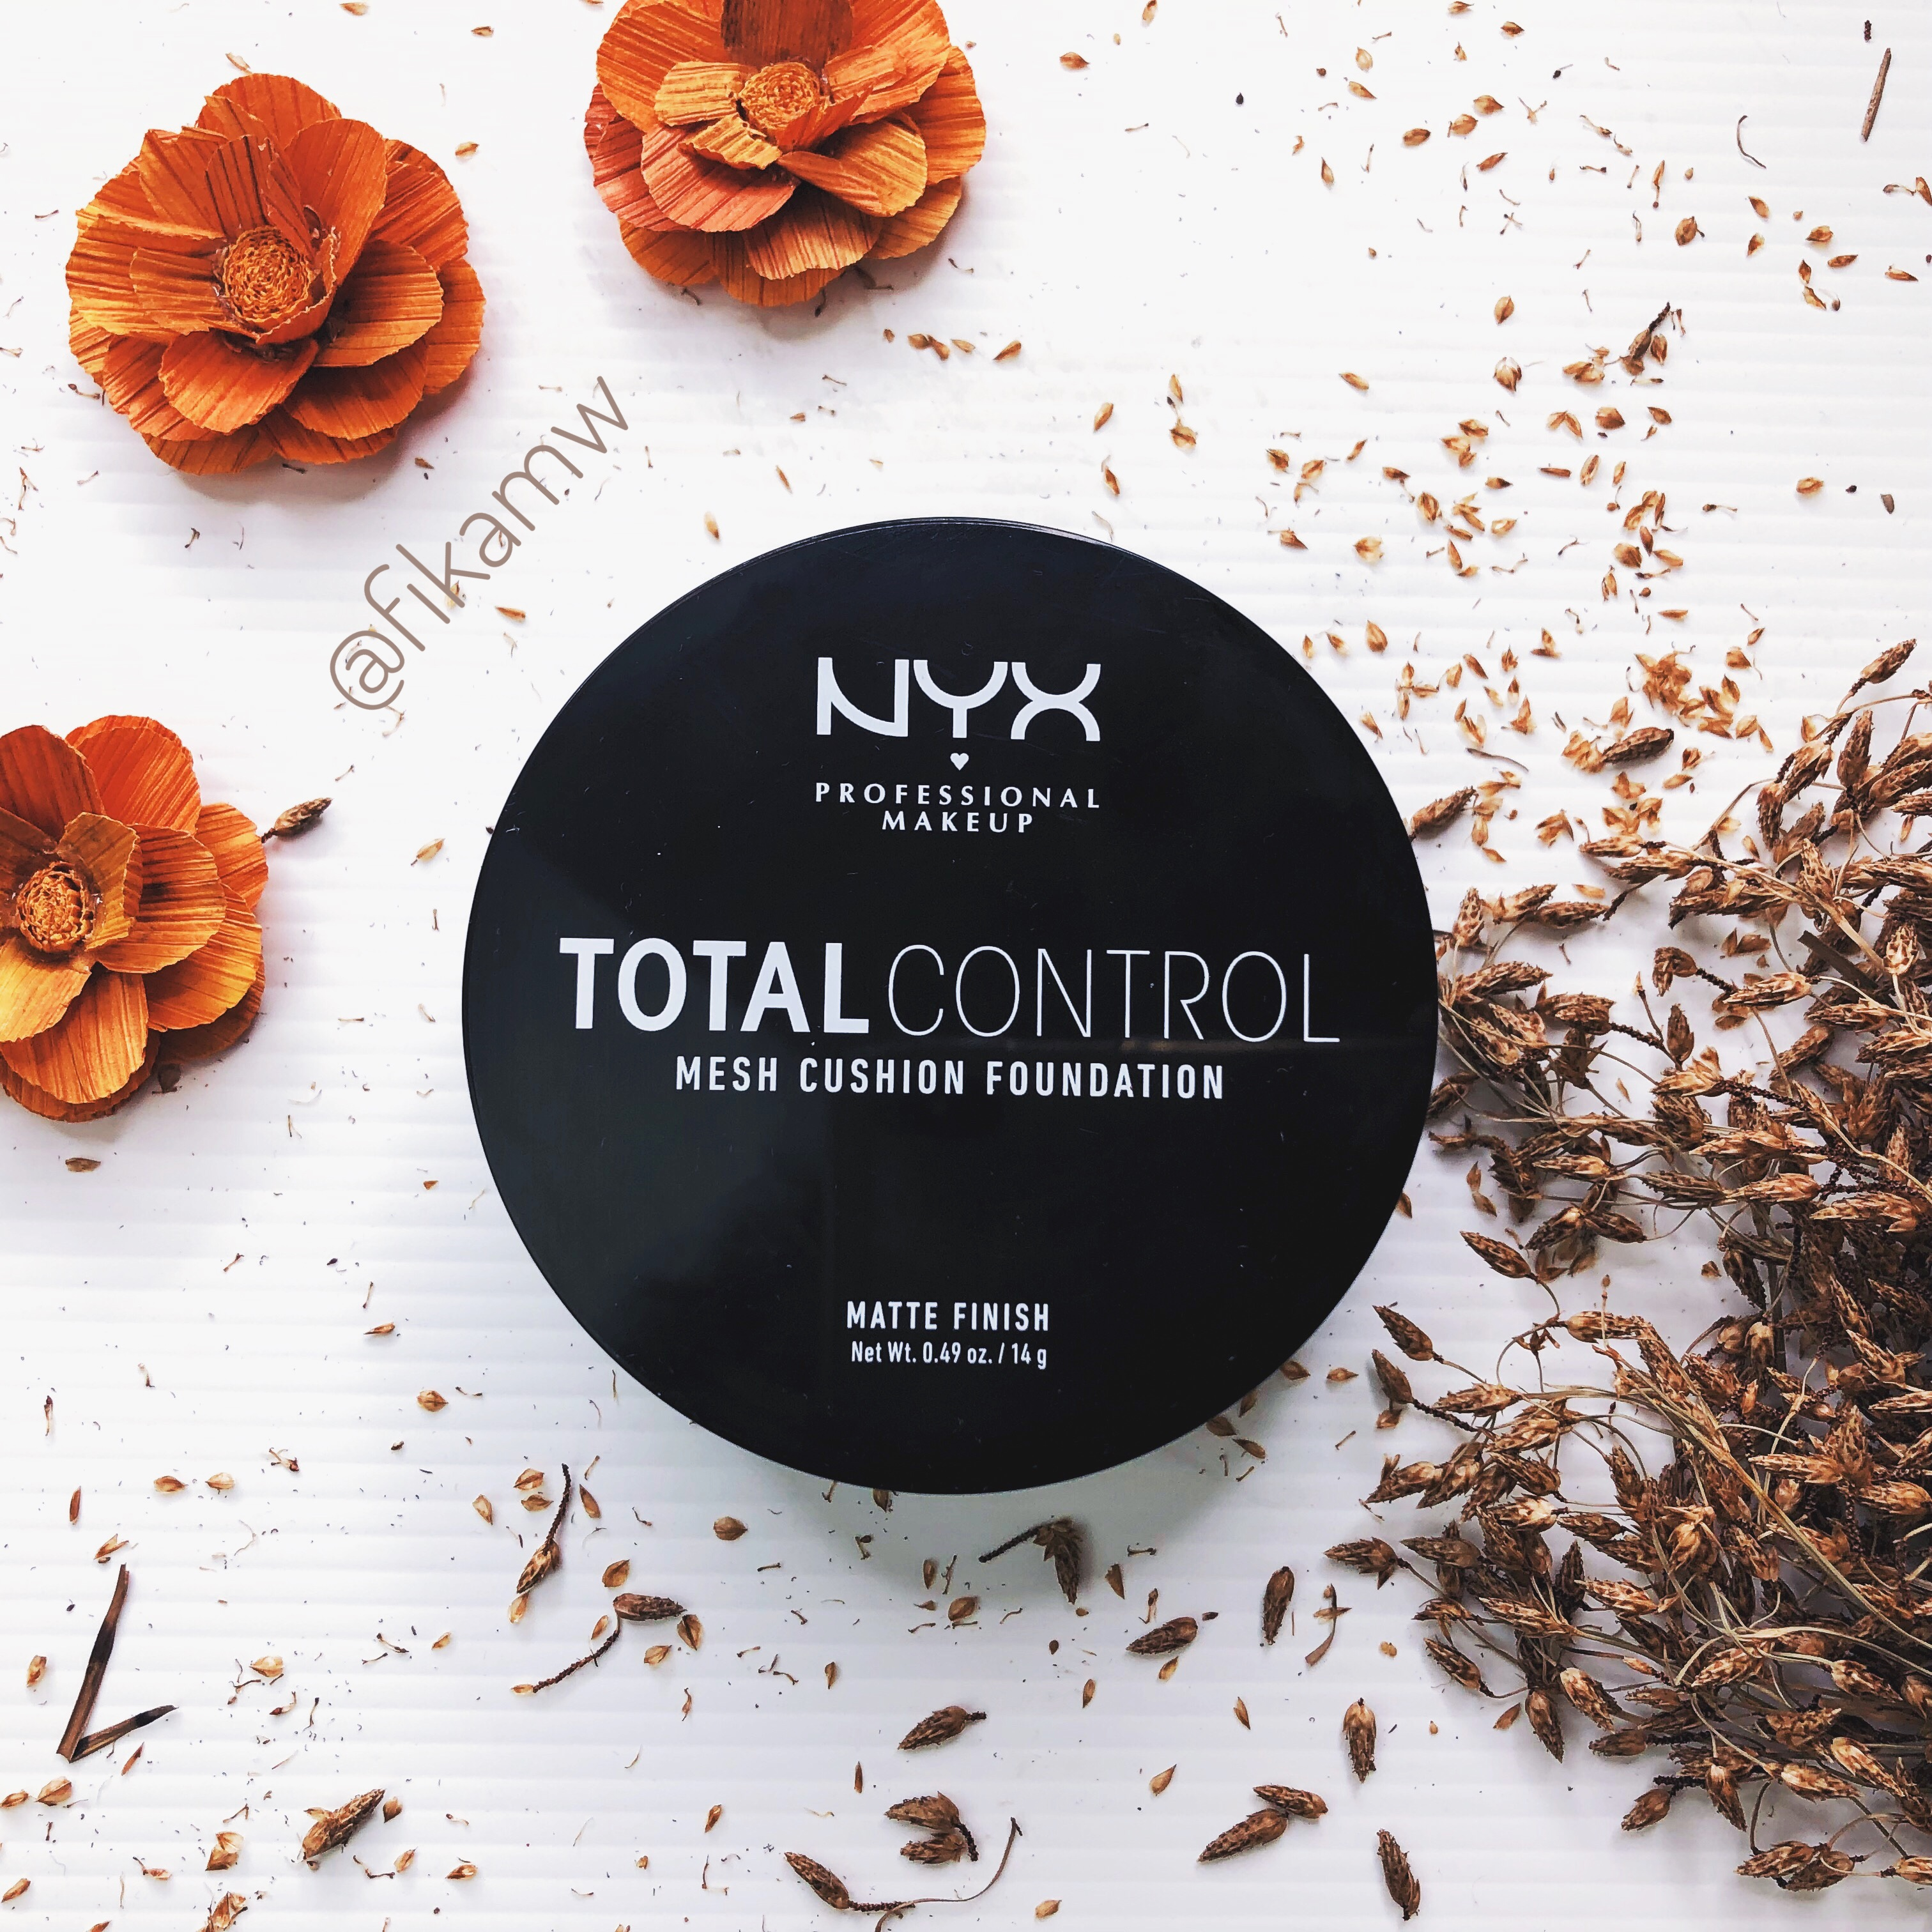 Review Nyx Total Control Mesh Cushion Foundation